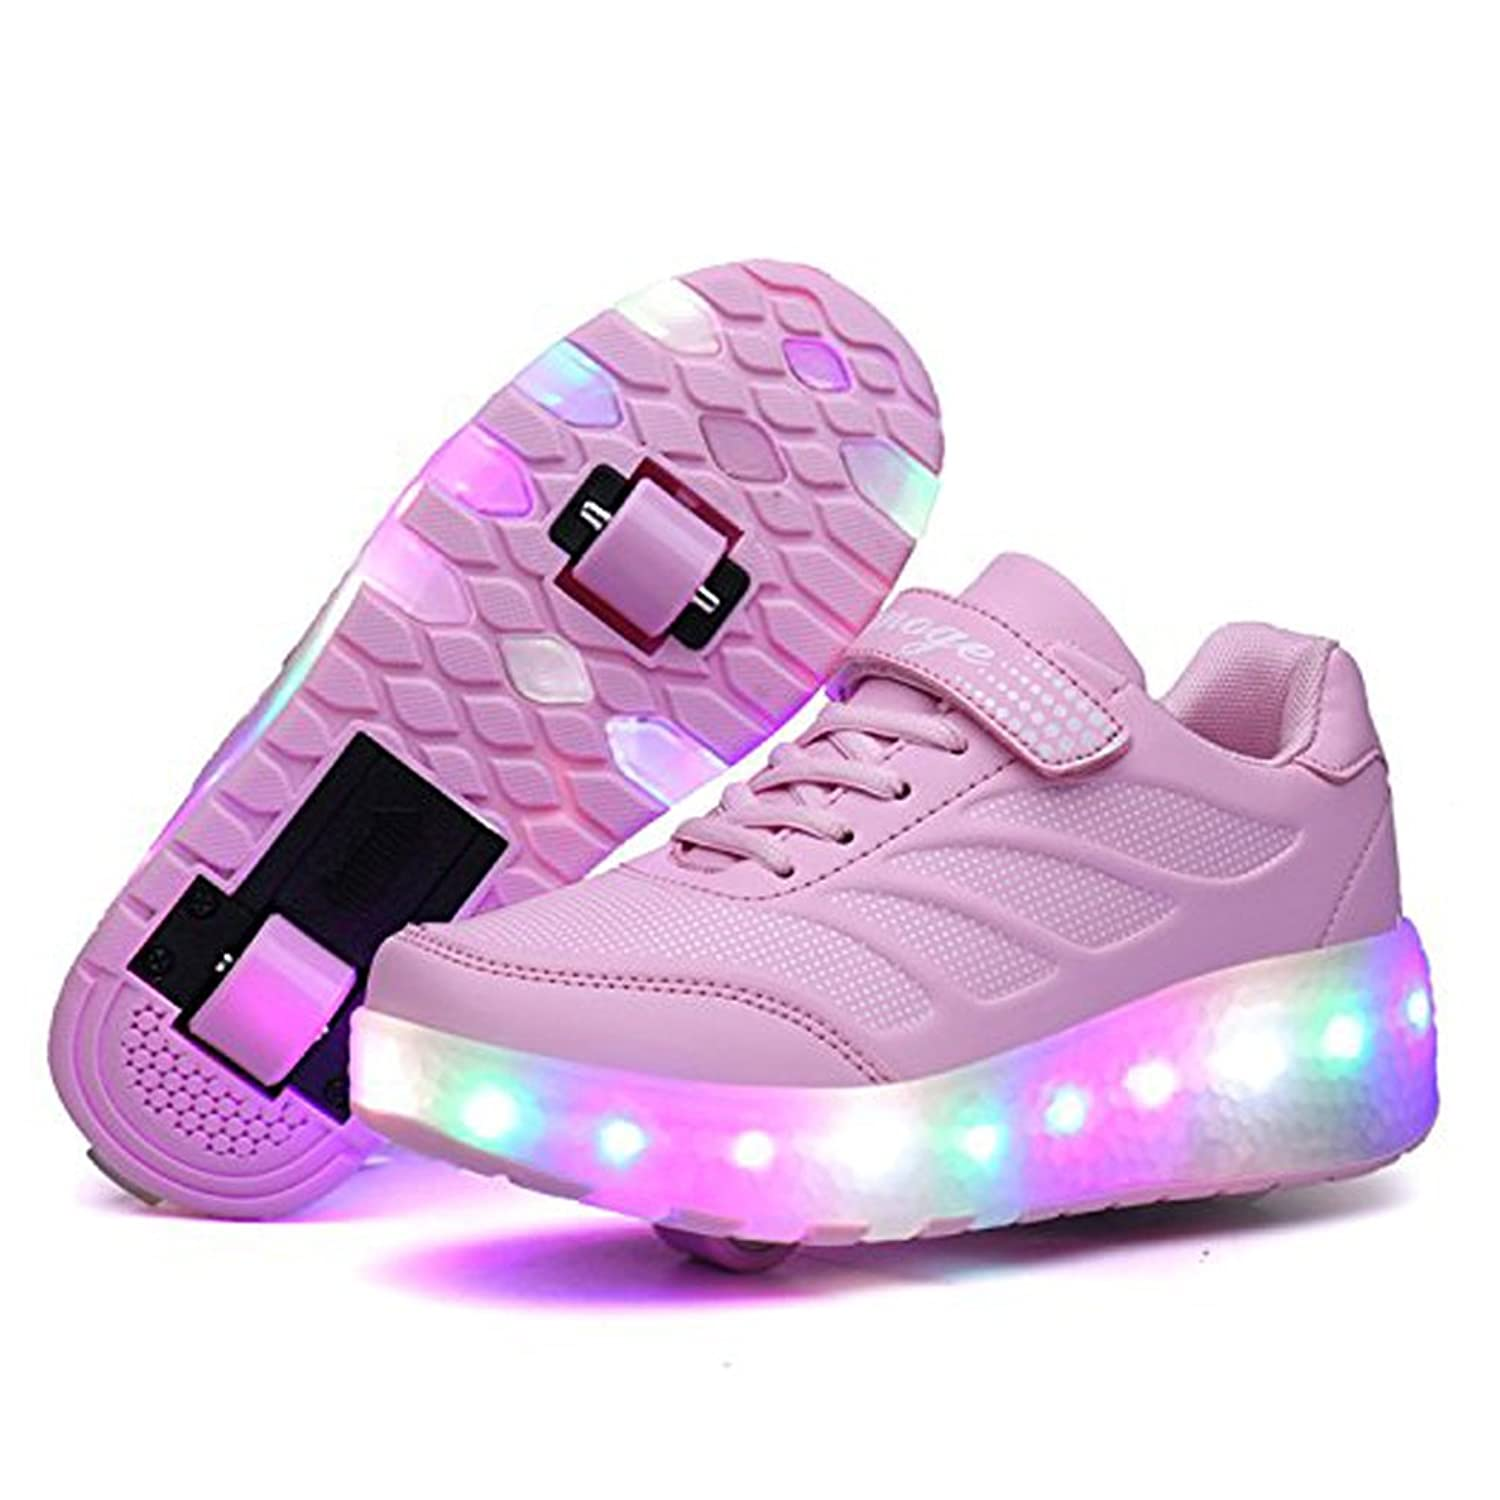 Chaussures rose pour fille